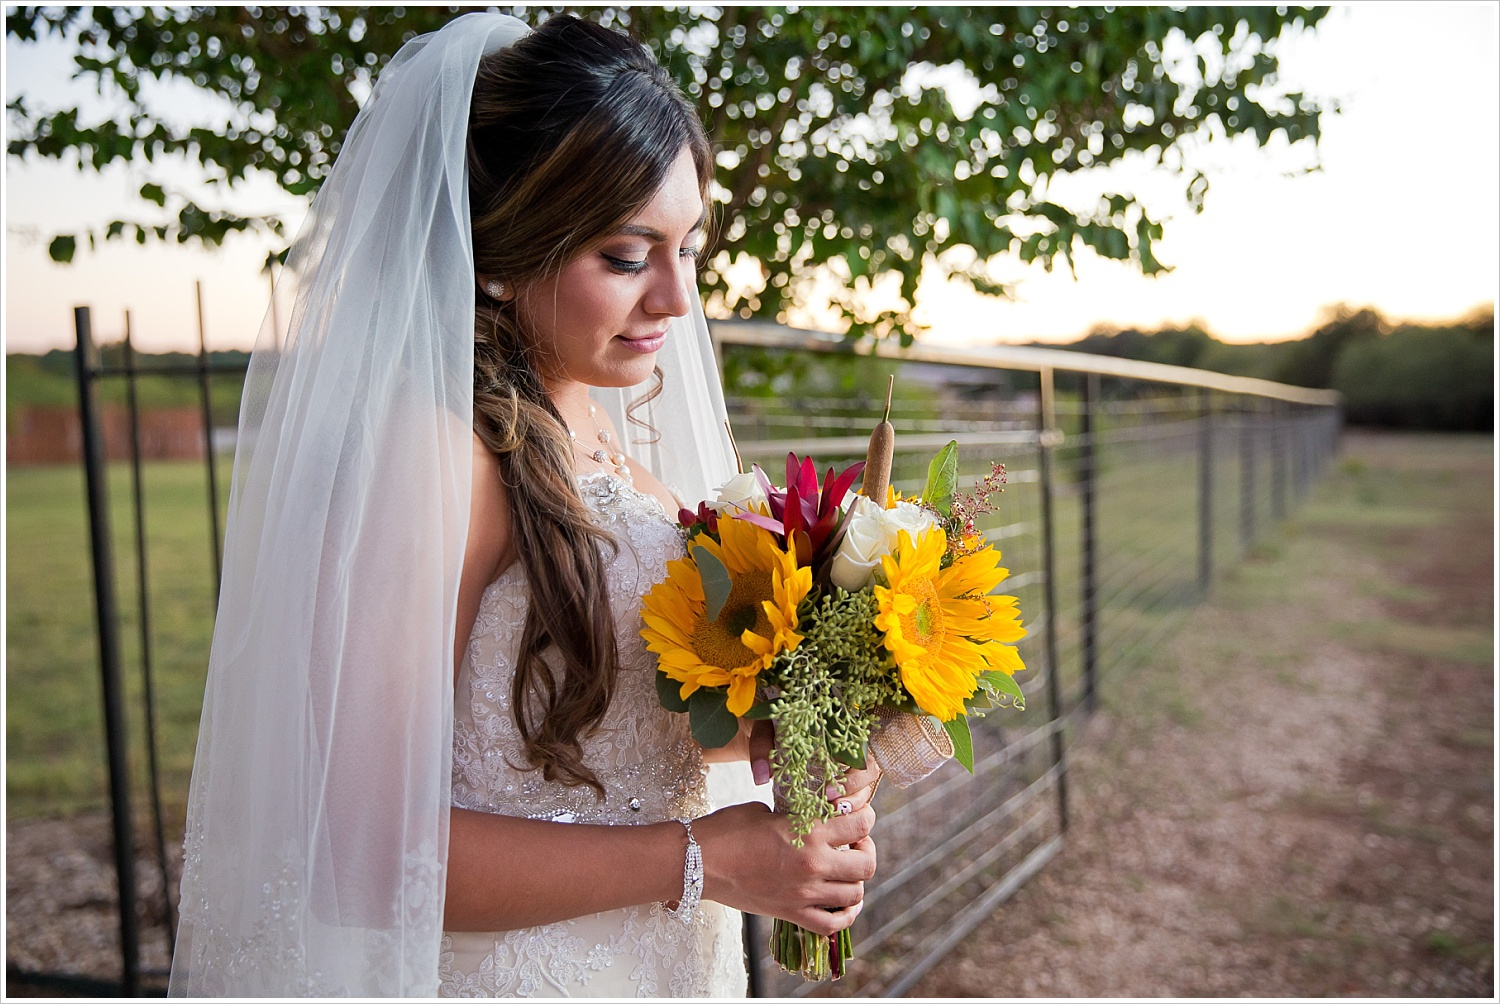 sunflower bridal bouquet | Vera Estates in China Springs, Texas | Jason & Melaina Photography